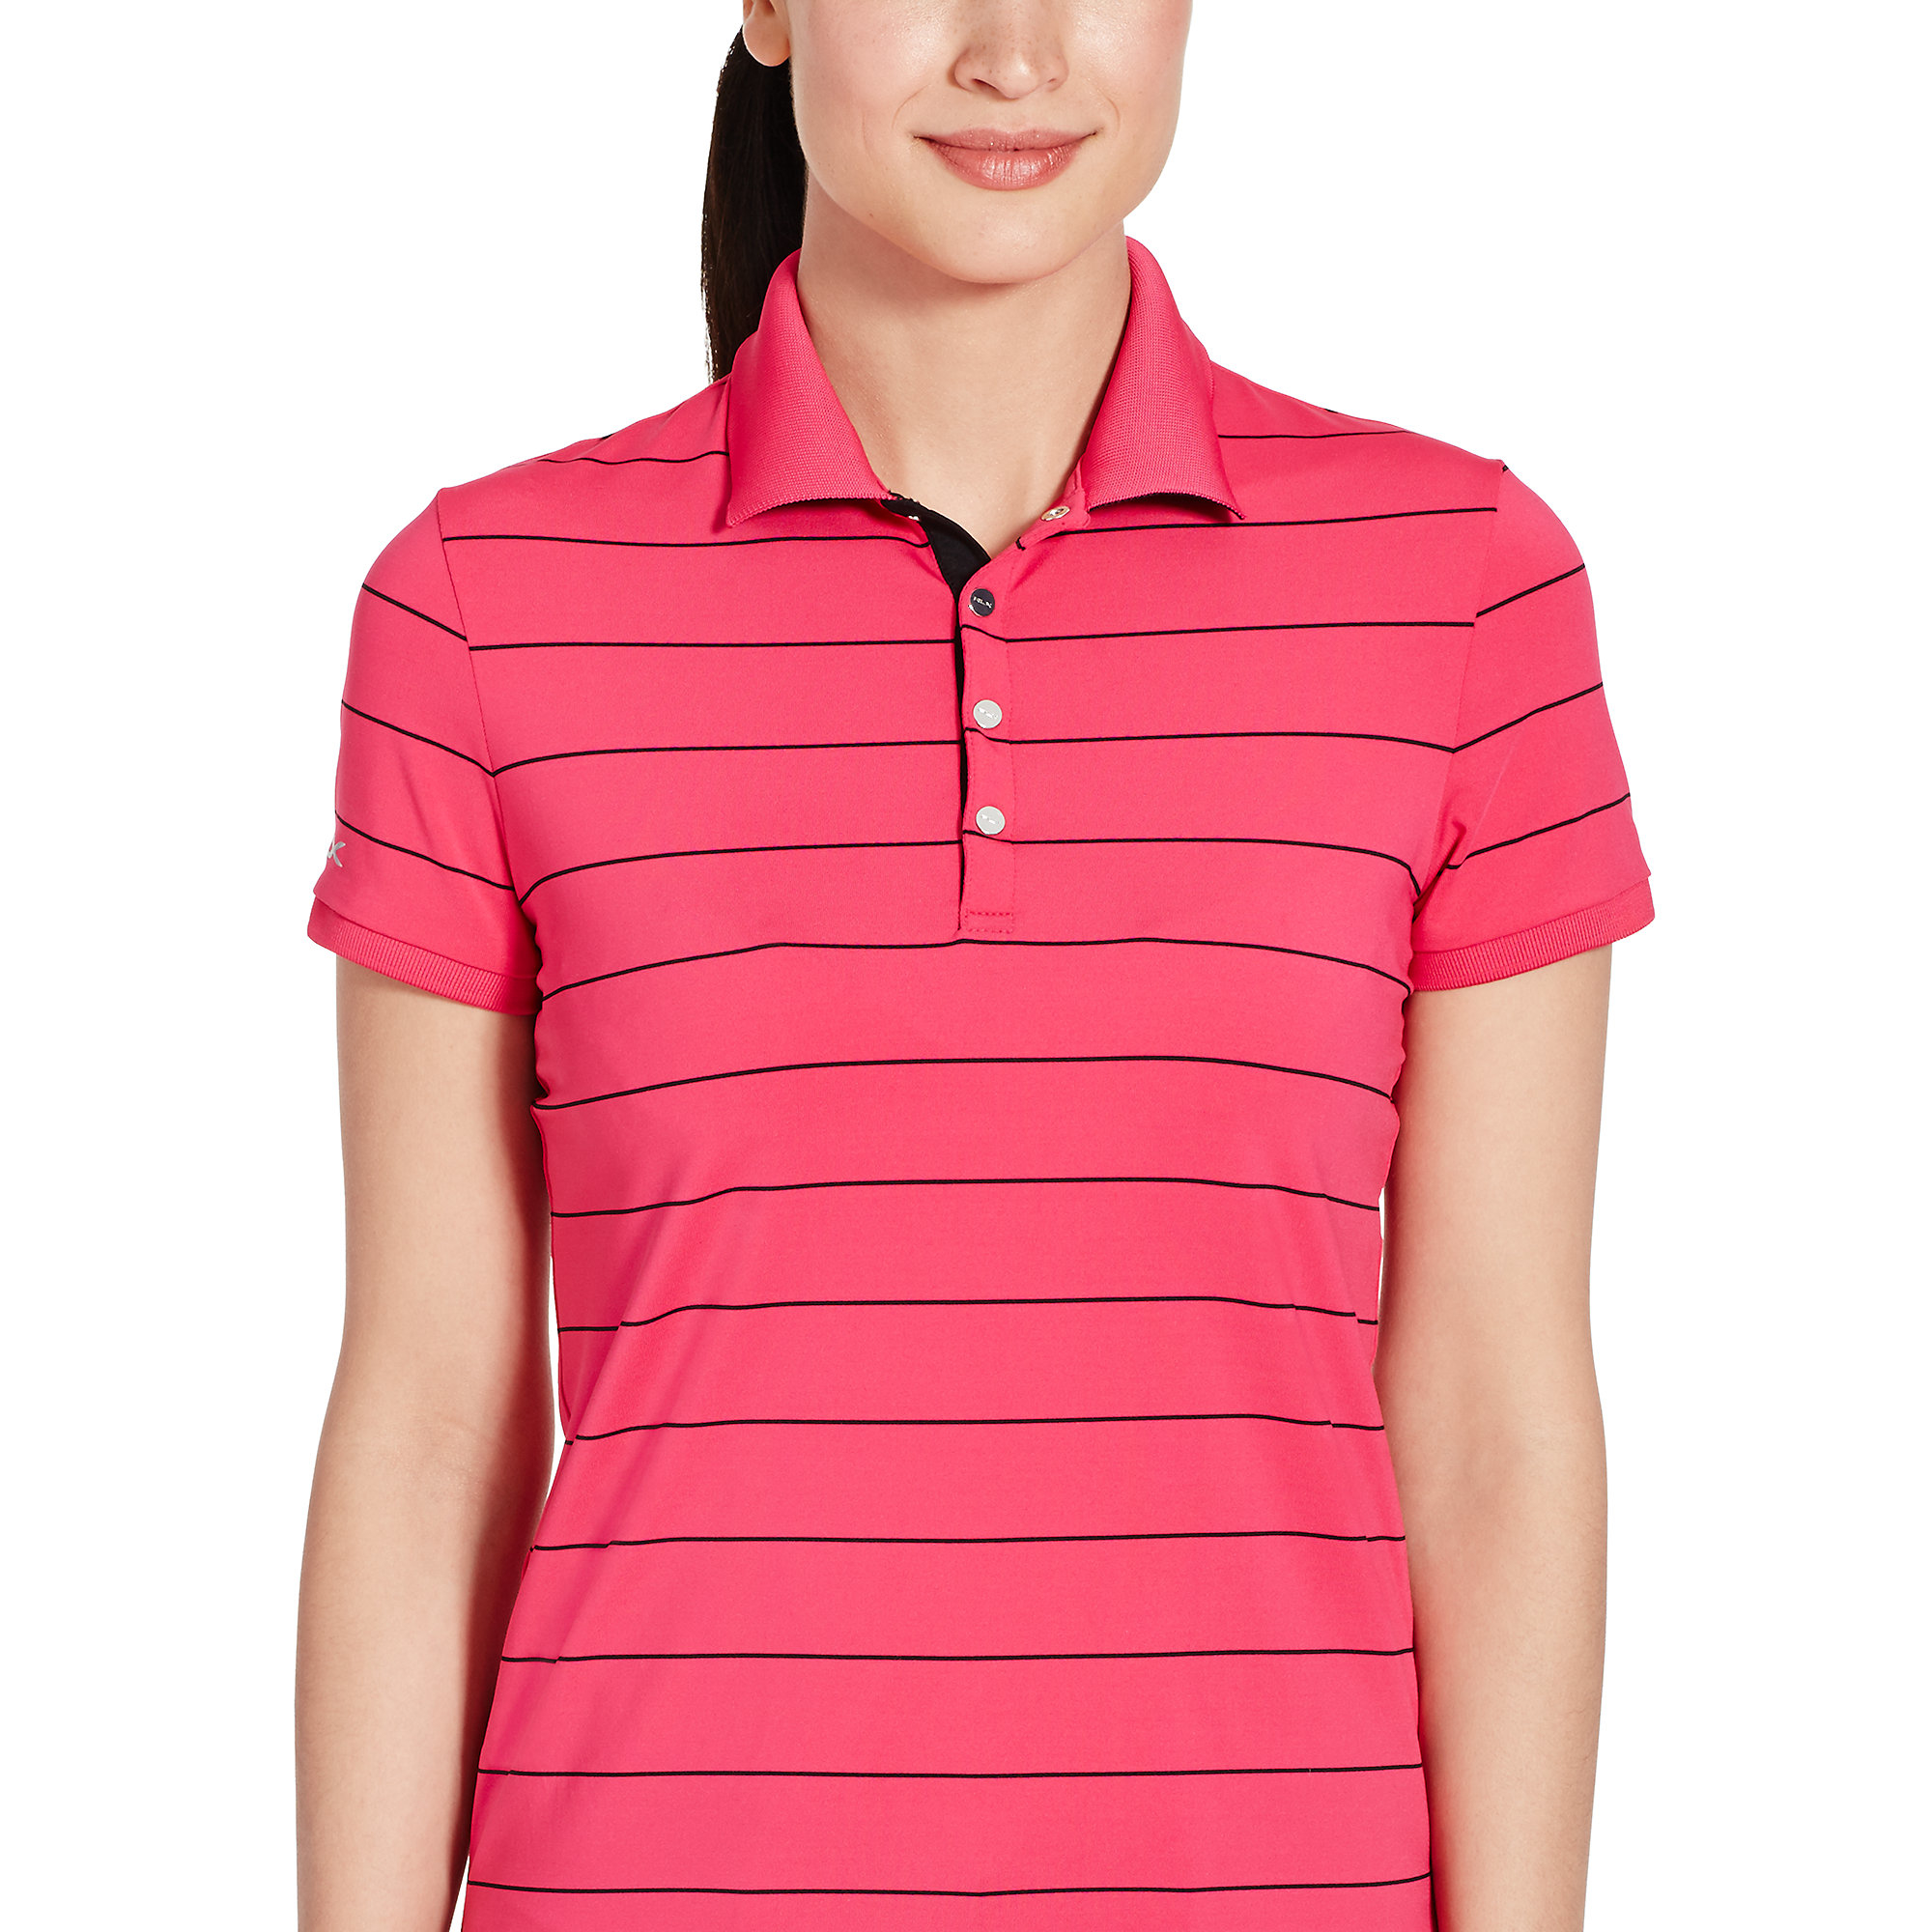 Ralph lauren striped stretch polo shirt in pink pink w for Pink white striped shirt